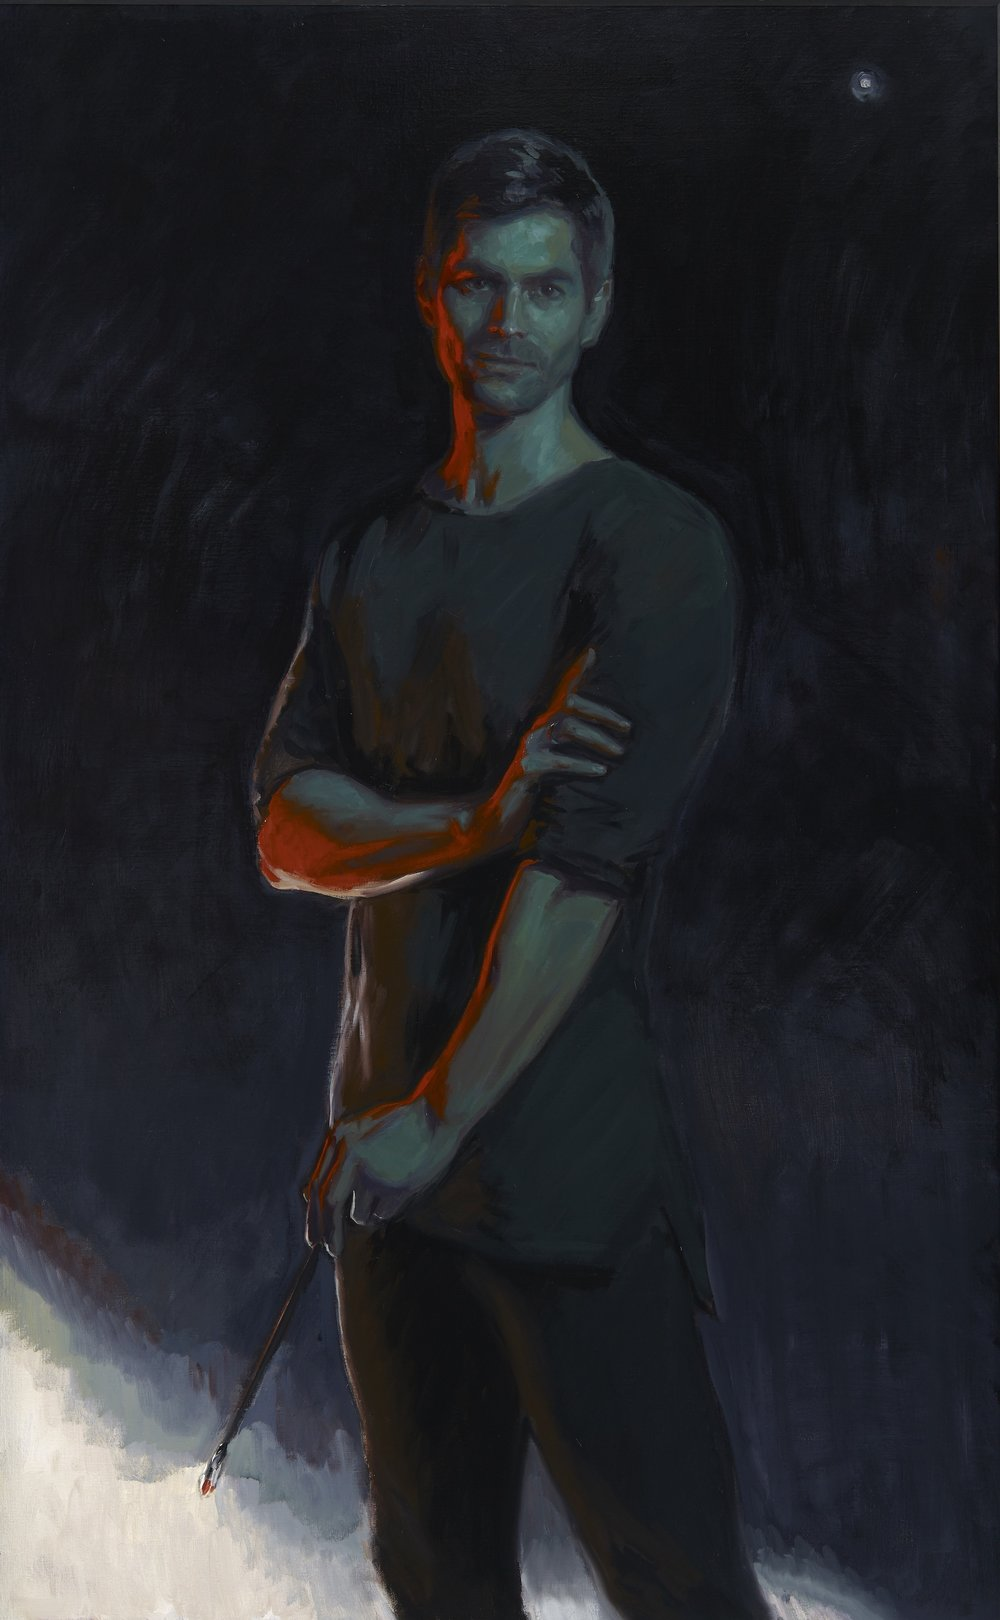 Self-Portrait,  Oil on Canvas, 85 x 145cm, 2017